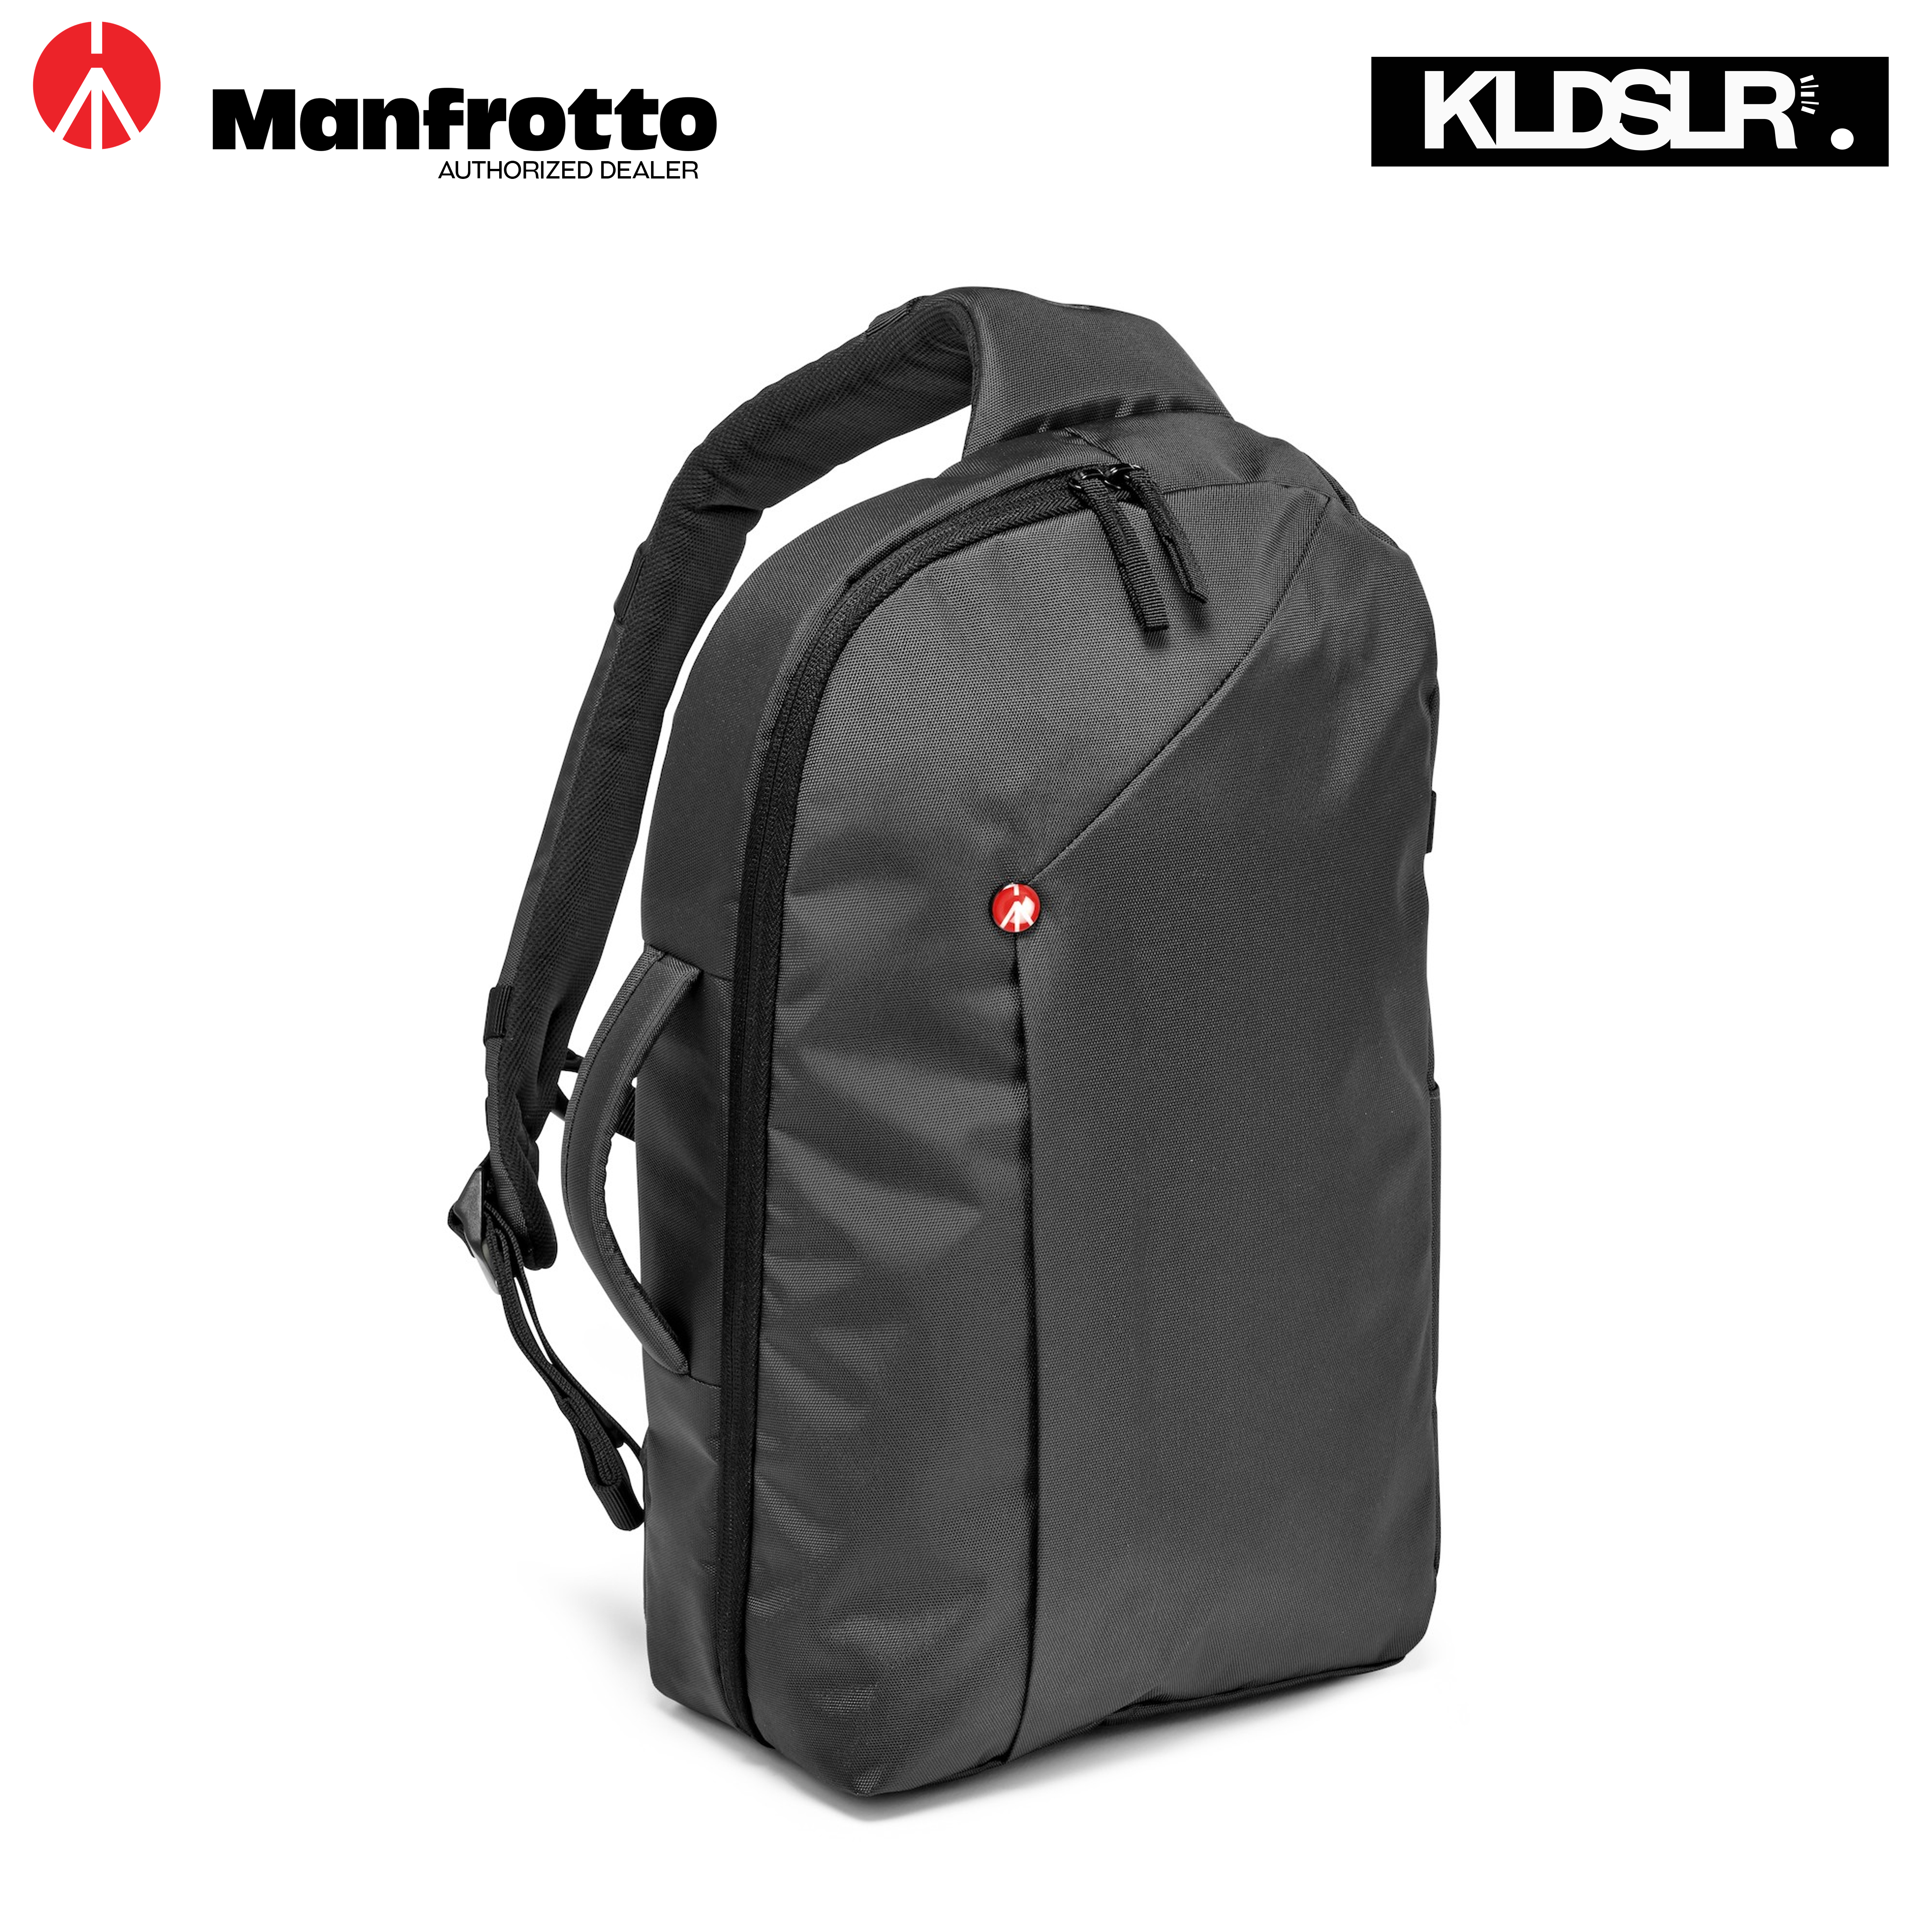 Mycybersale Manfrotto Nx Camera Sling Bag I Grey For Csc Mb S Igy Lowepro Format 160